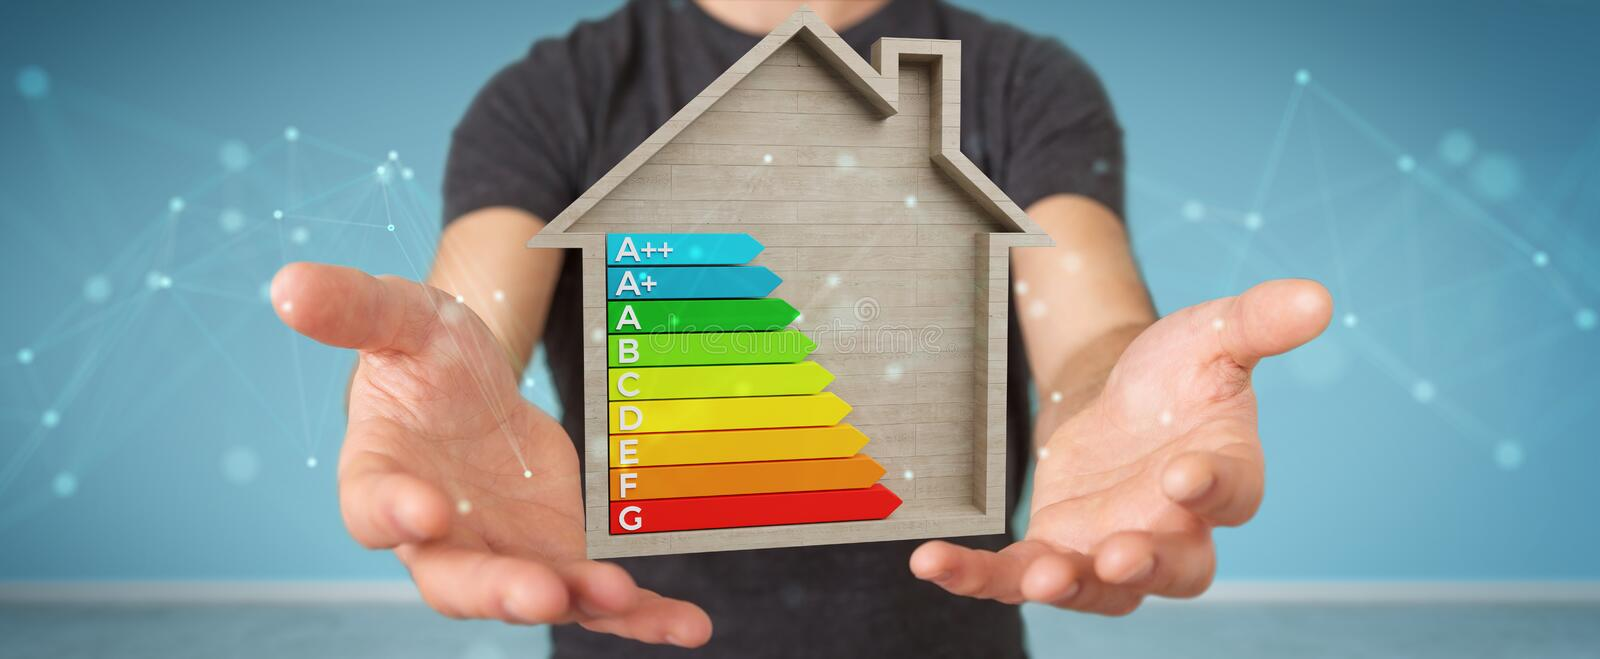 Businessman using 3D rendering energy rating chart in a wooden h royalty free illustration